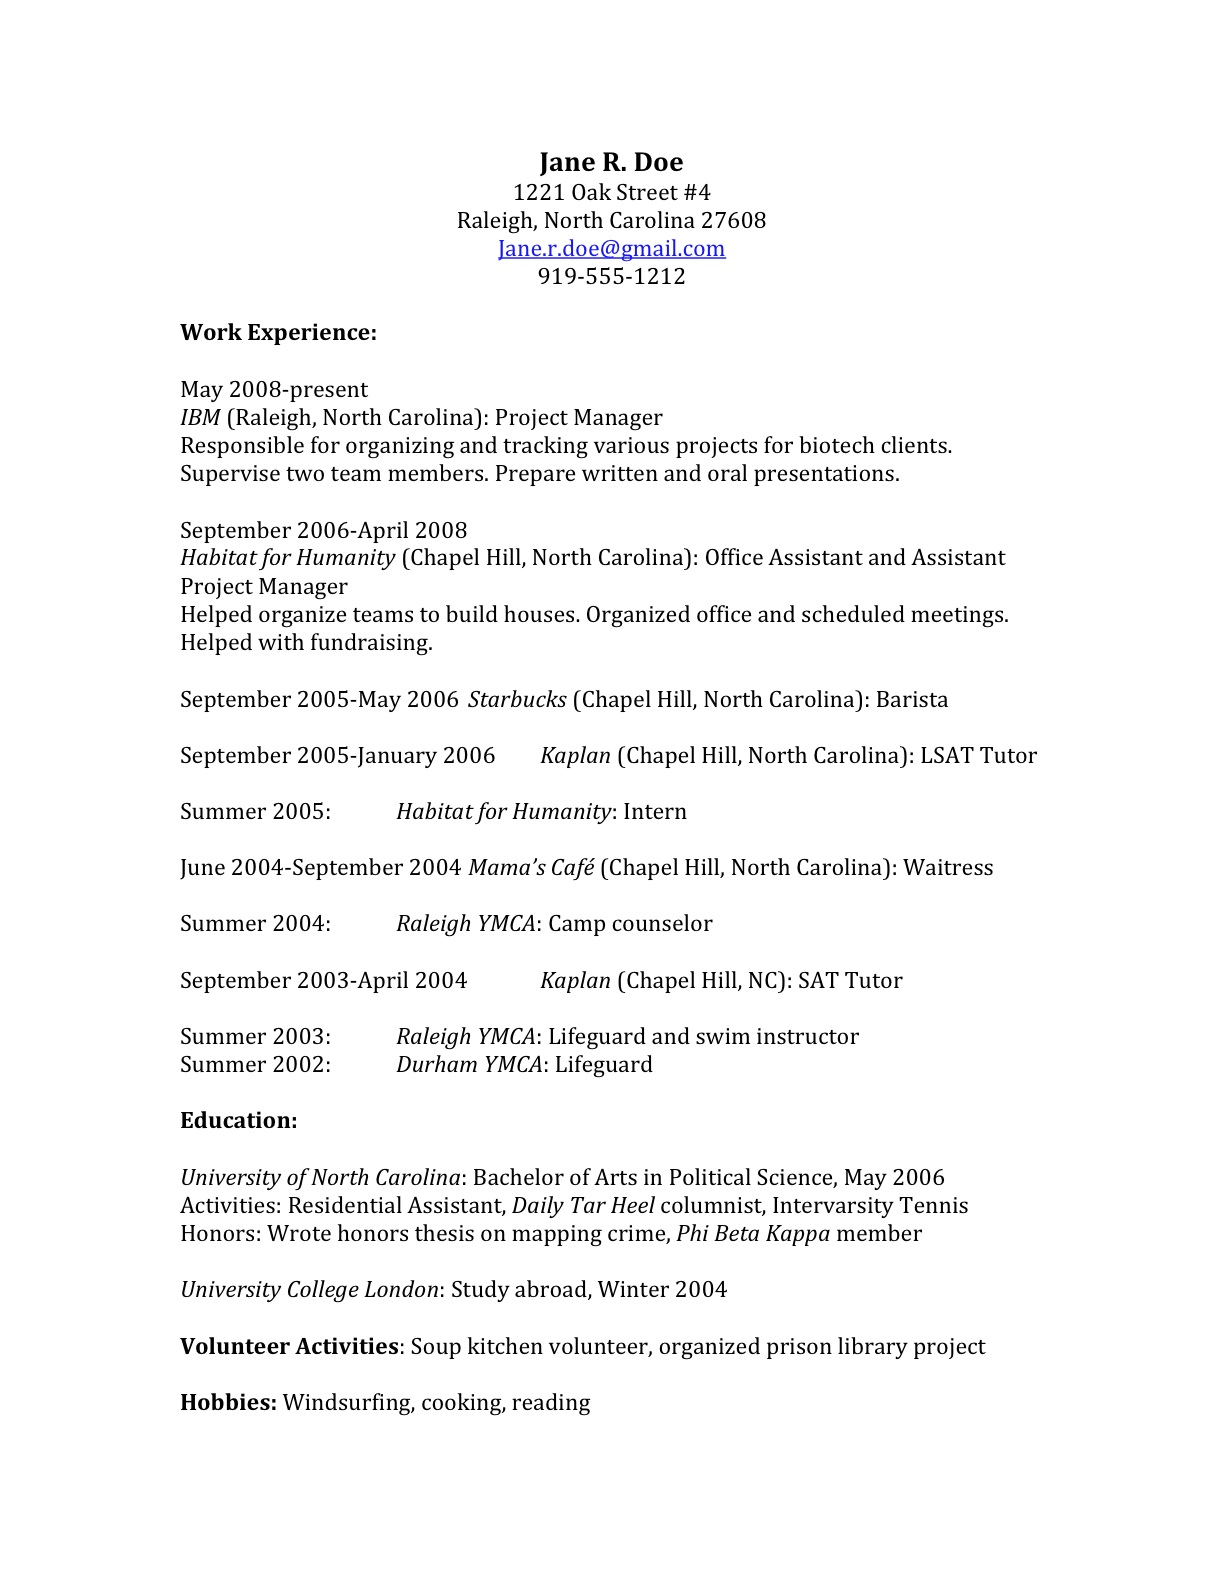 Marvelous Jane Doeu0027s Starting Resume To Sample Law School Resume